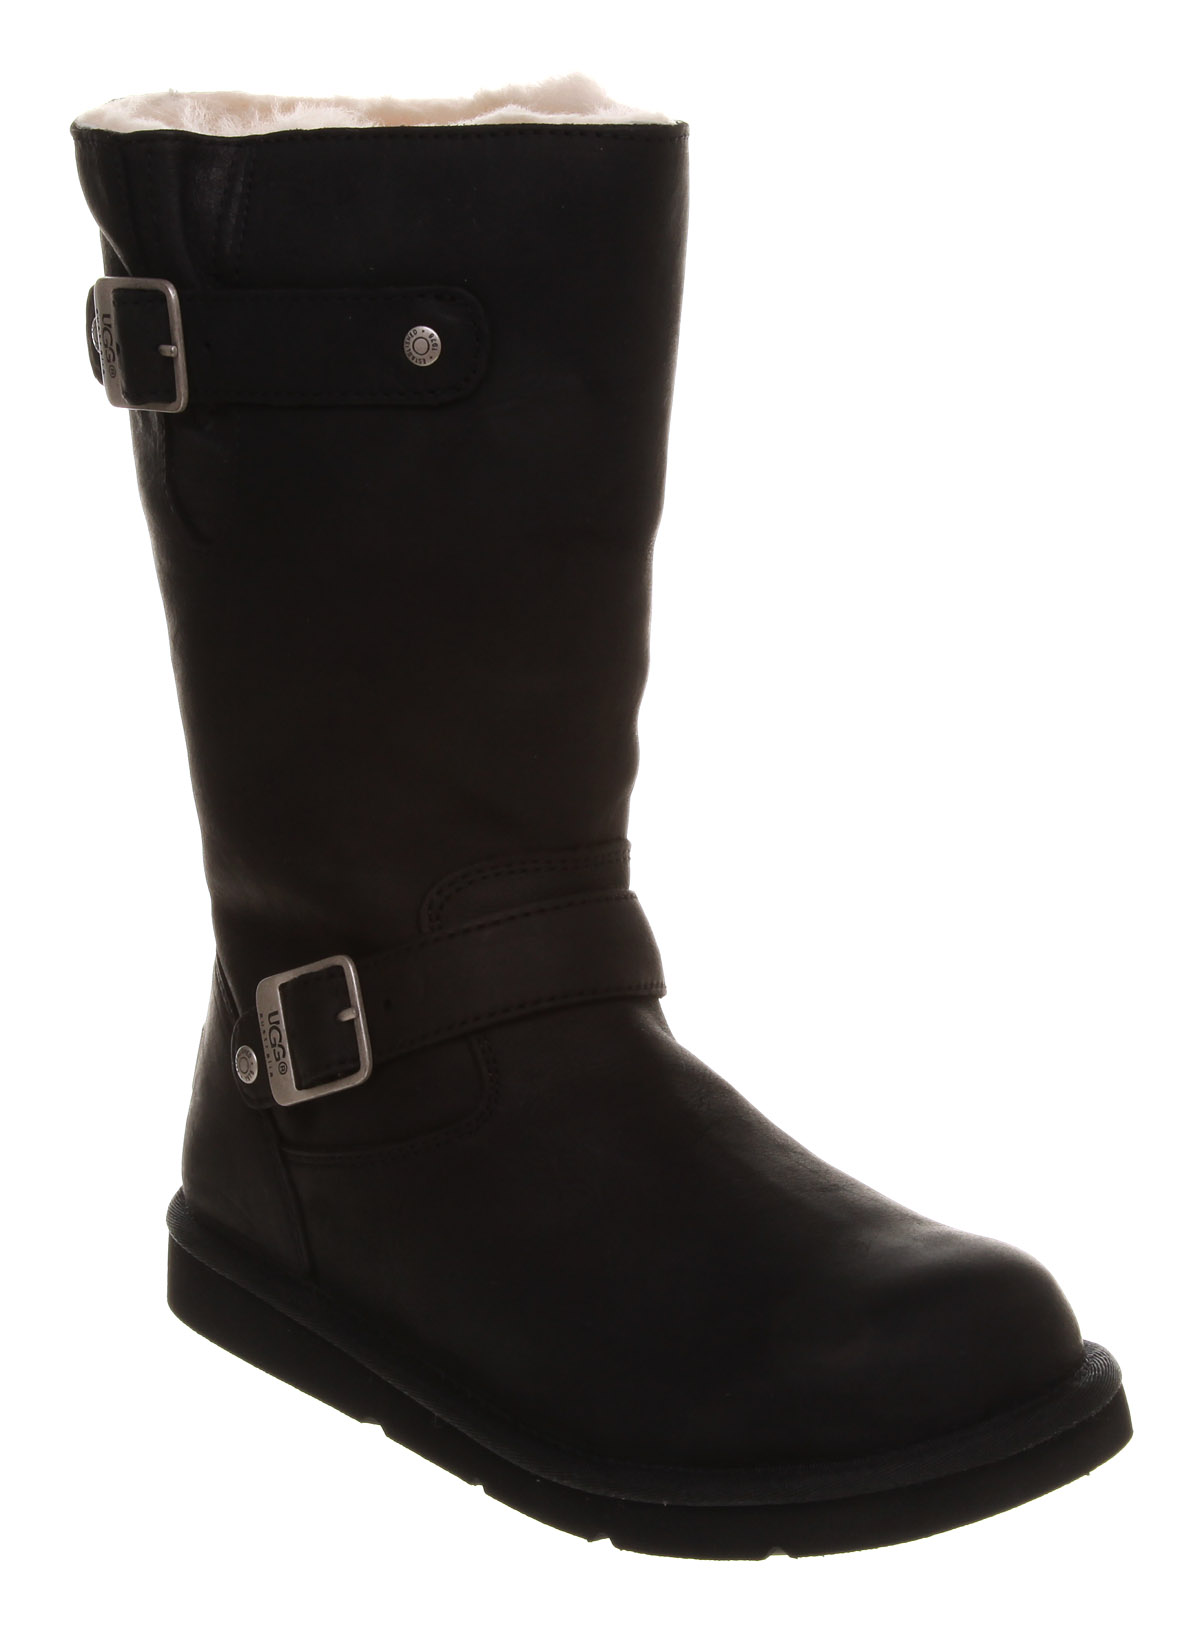 ugg kensington biker boot black leather in black lyst